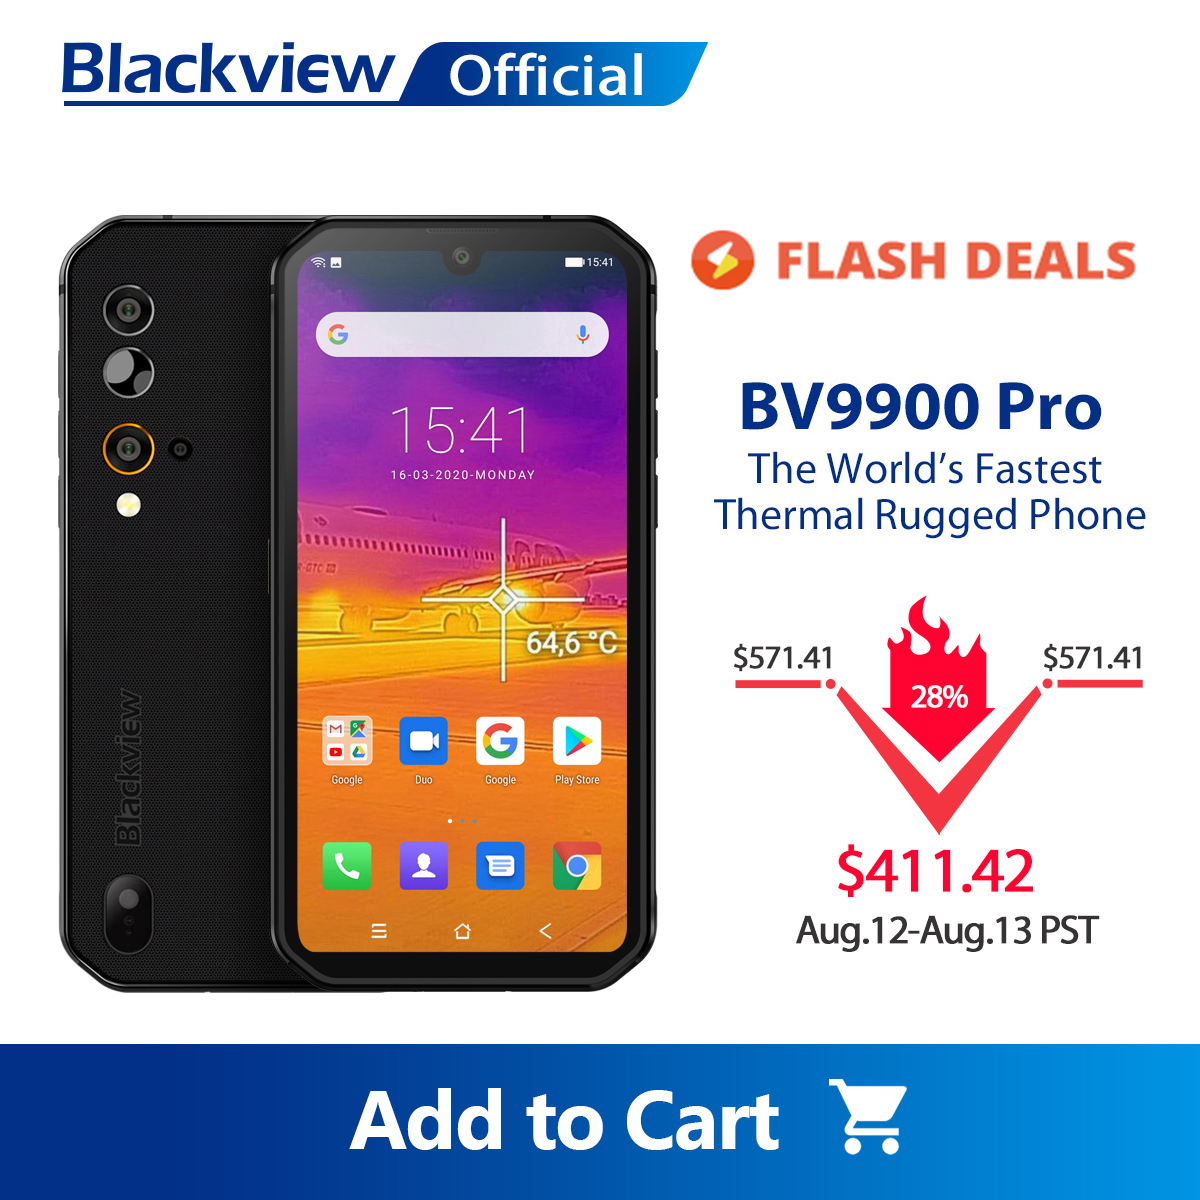 Blackview Helio P90 BV9900 Pro Thermal-Camera 128GB WCDMA/CDMA/GSM/LTE Nfc Wireless Charging